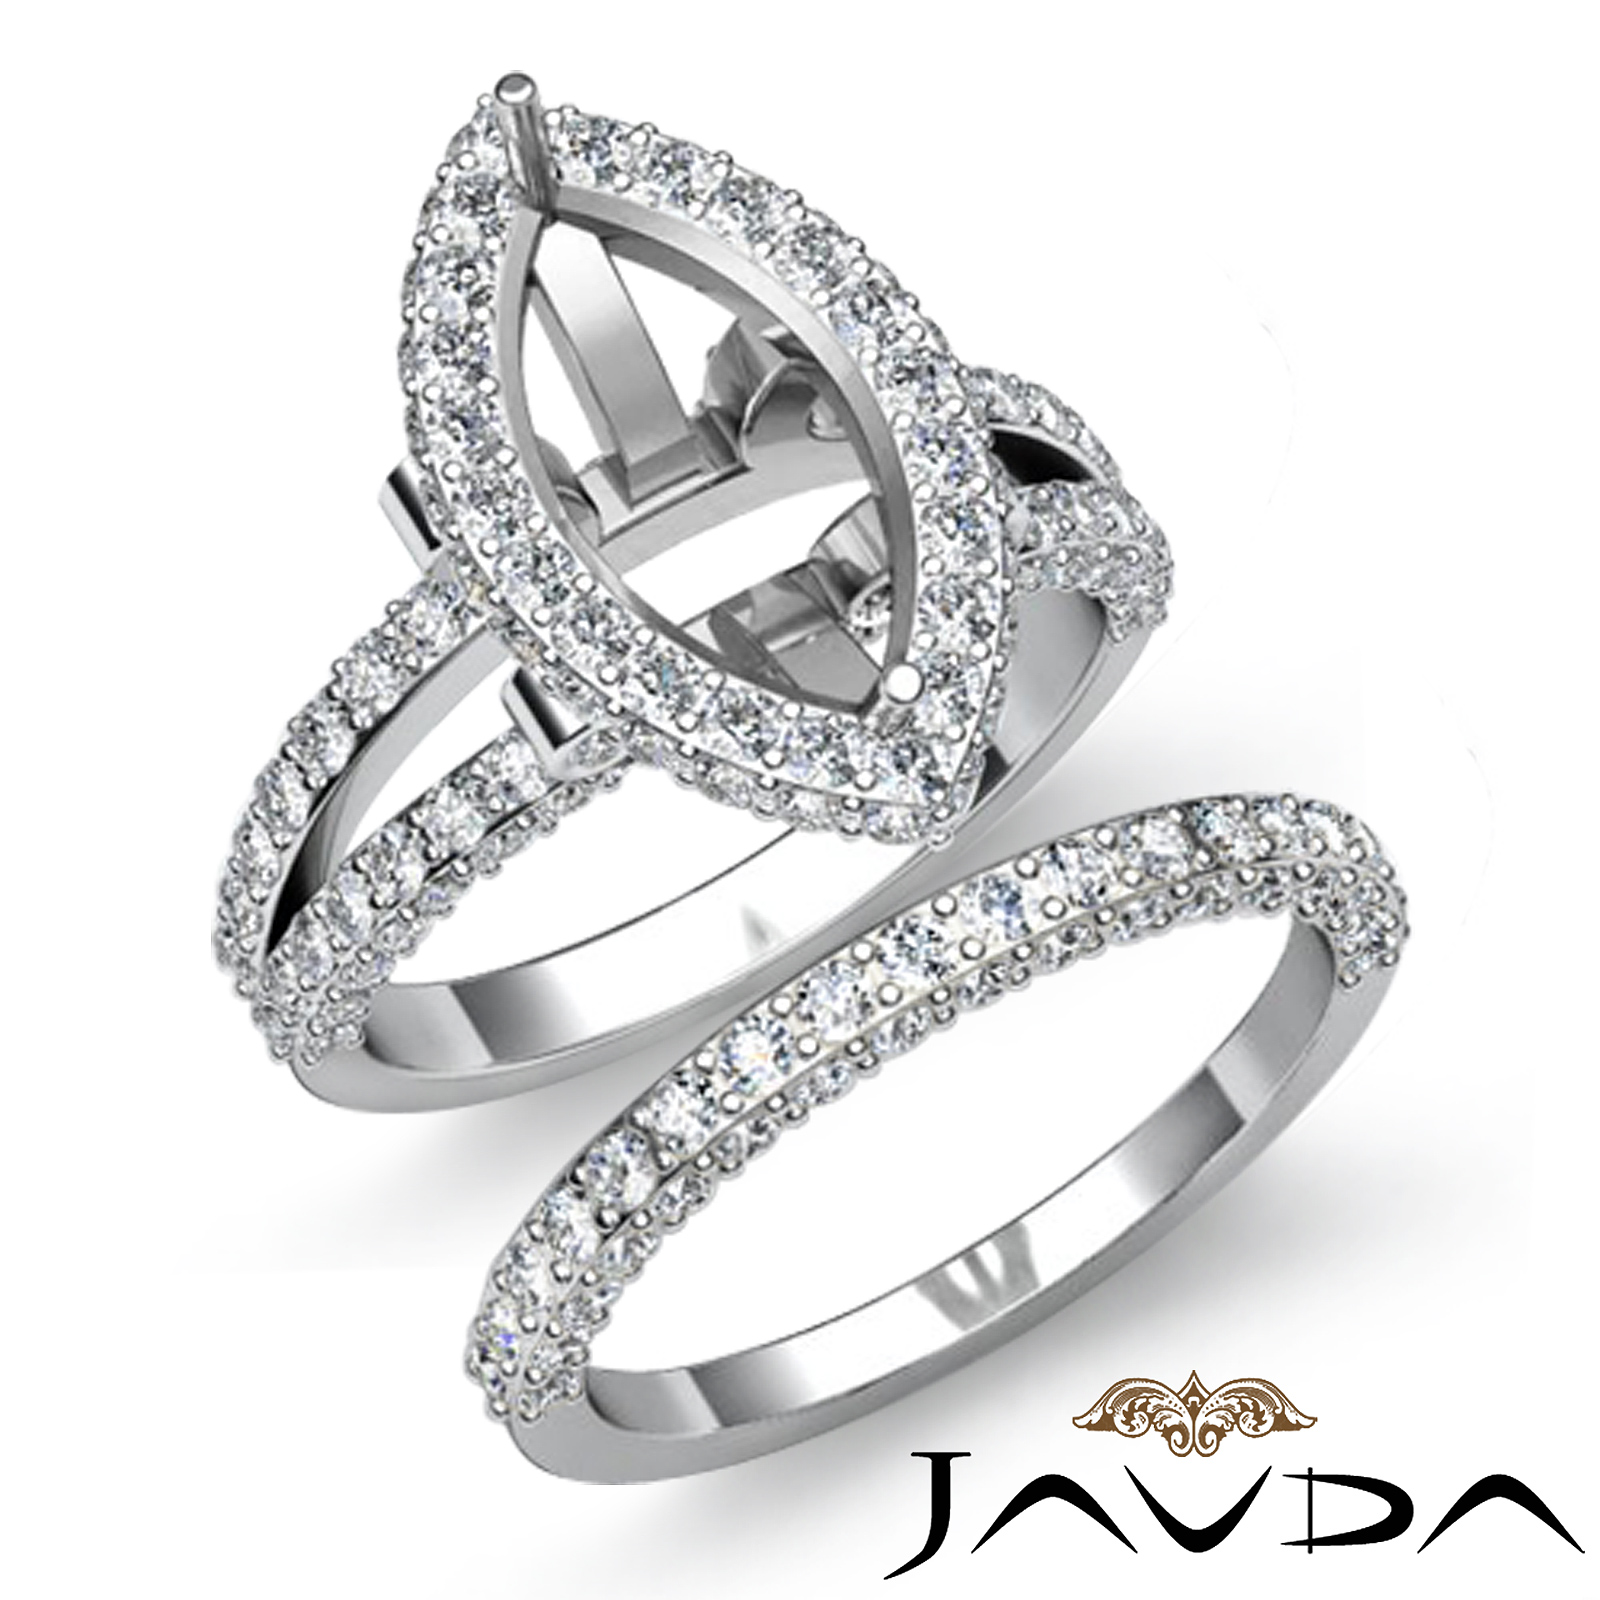 diamond engagement halo ring bridal set platinum 950. Black Bedroom Furniture Sets. Home Design Ideas